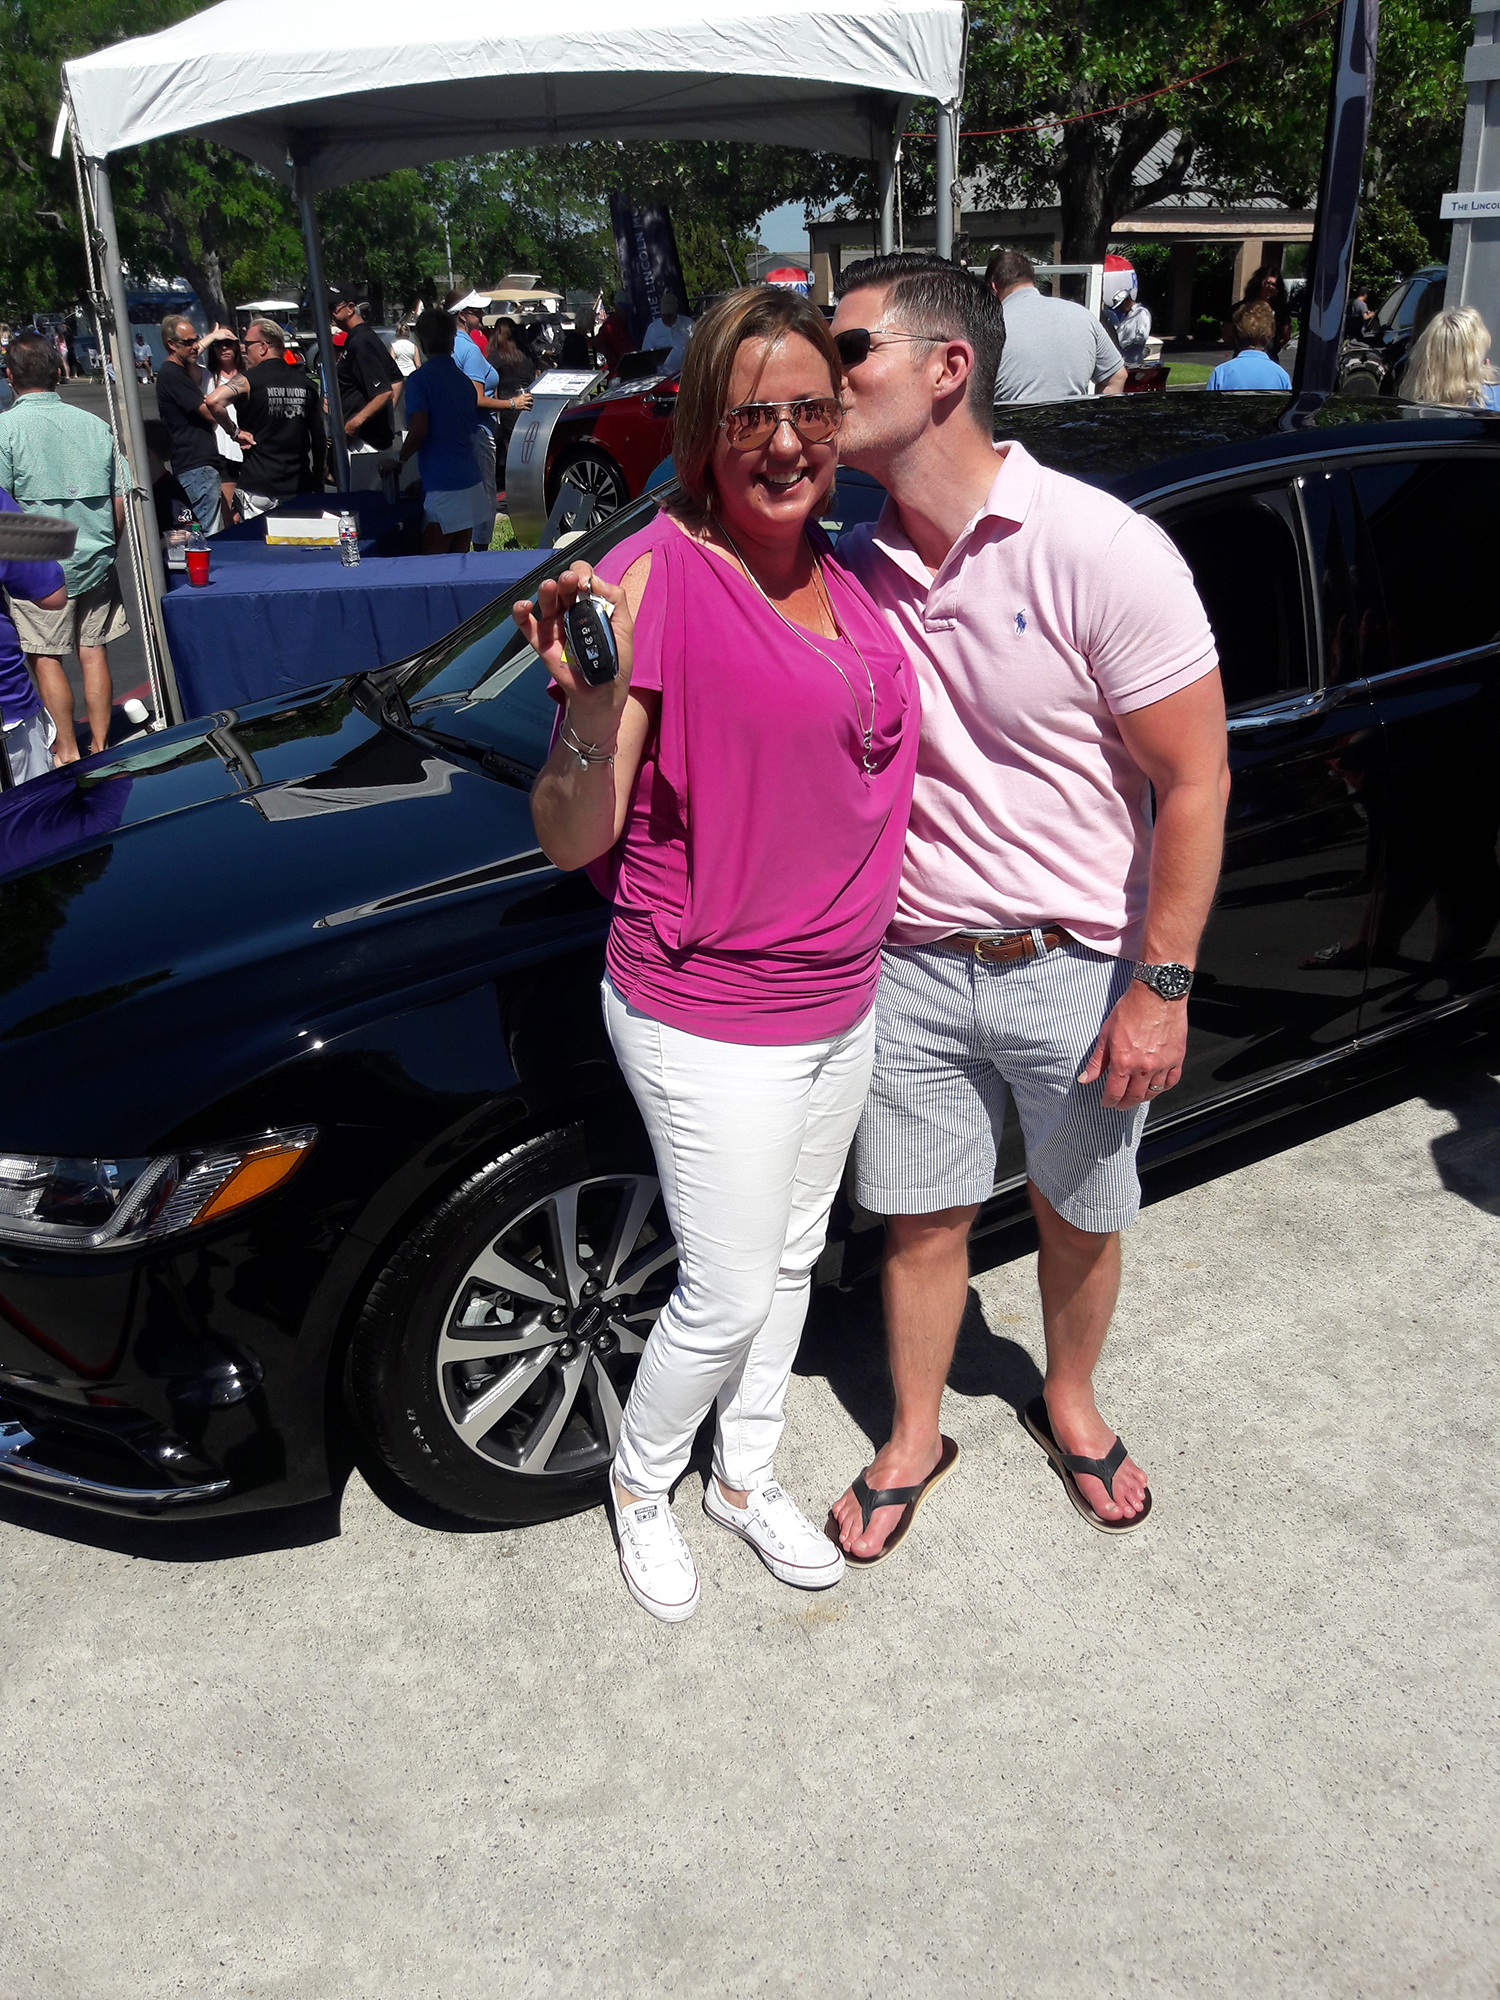 The Lincoln Motor Company Keels & Wheels Event